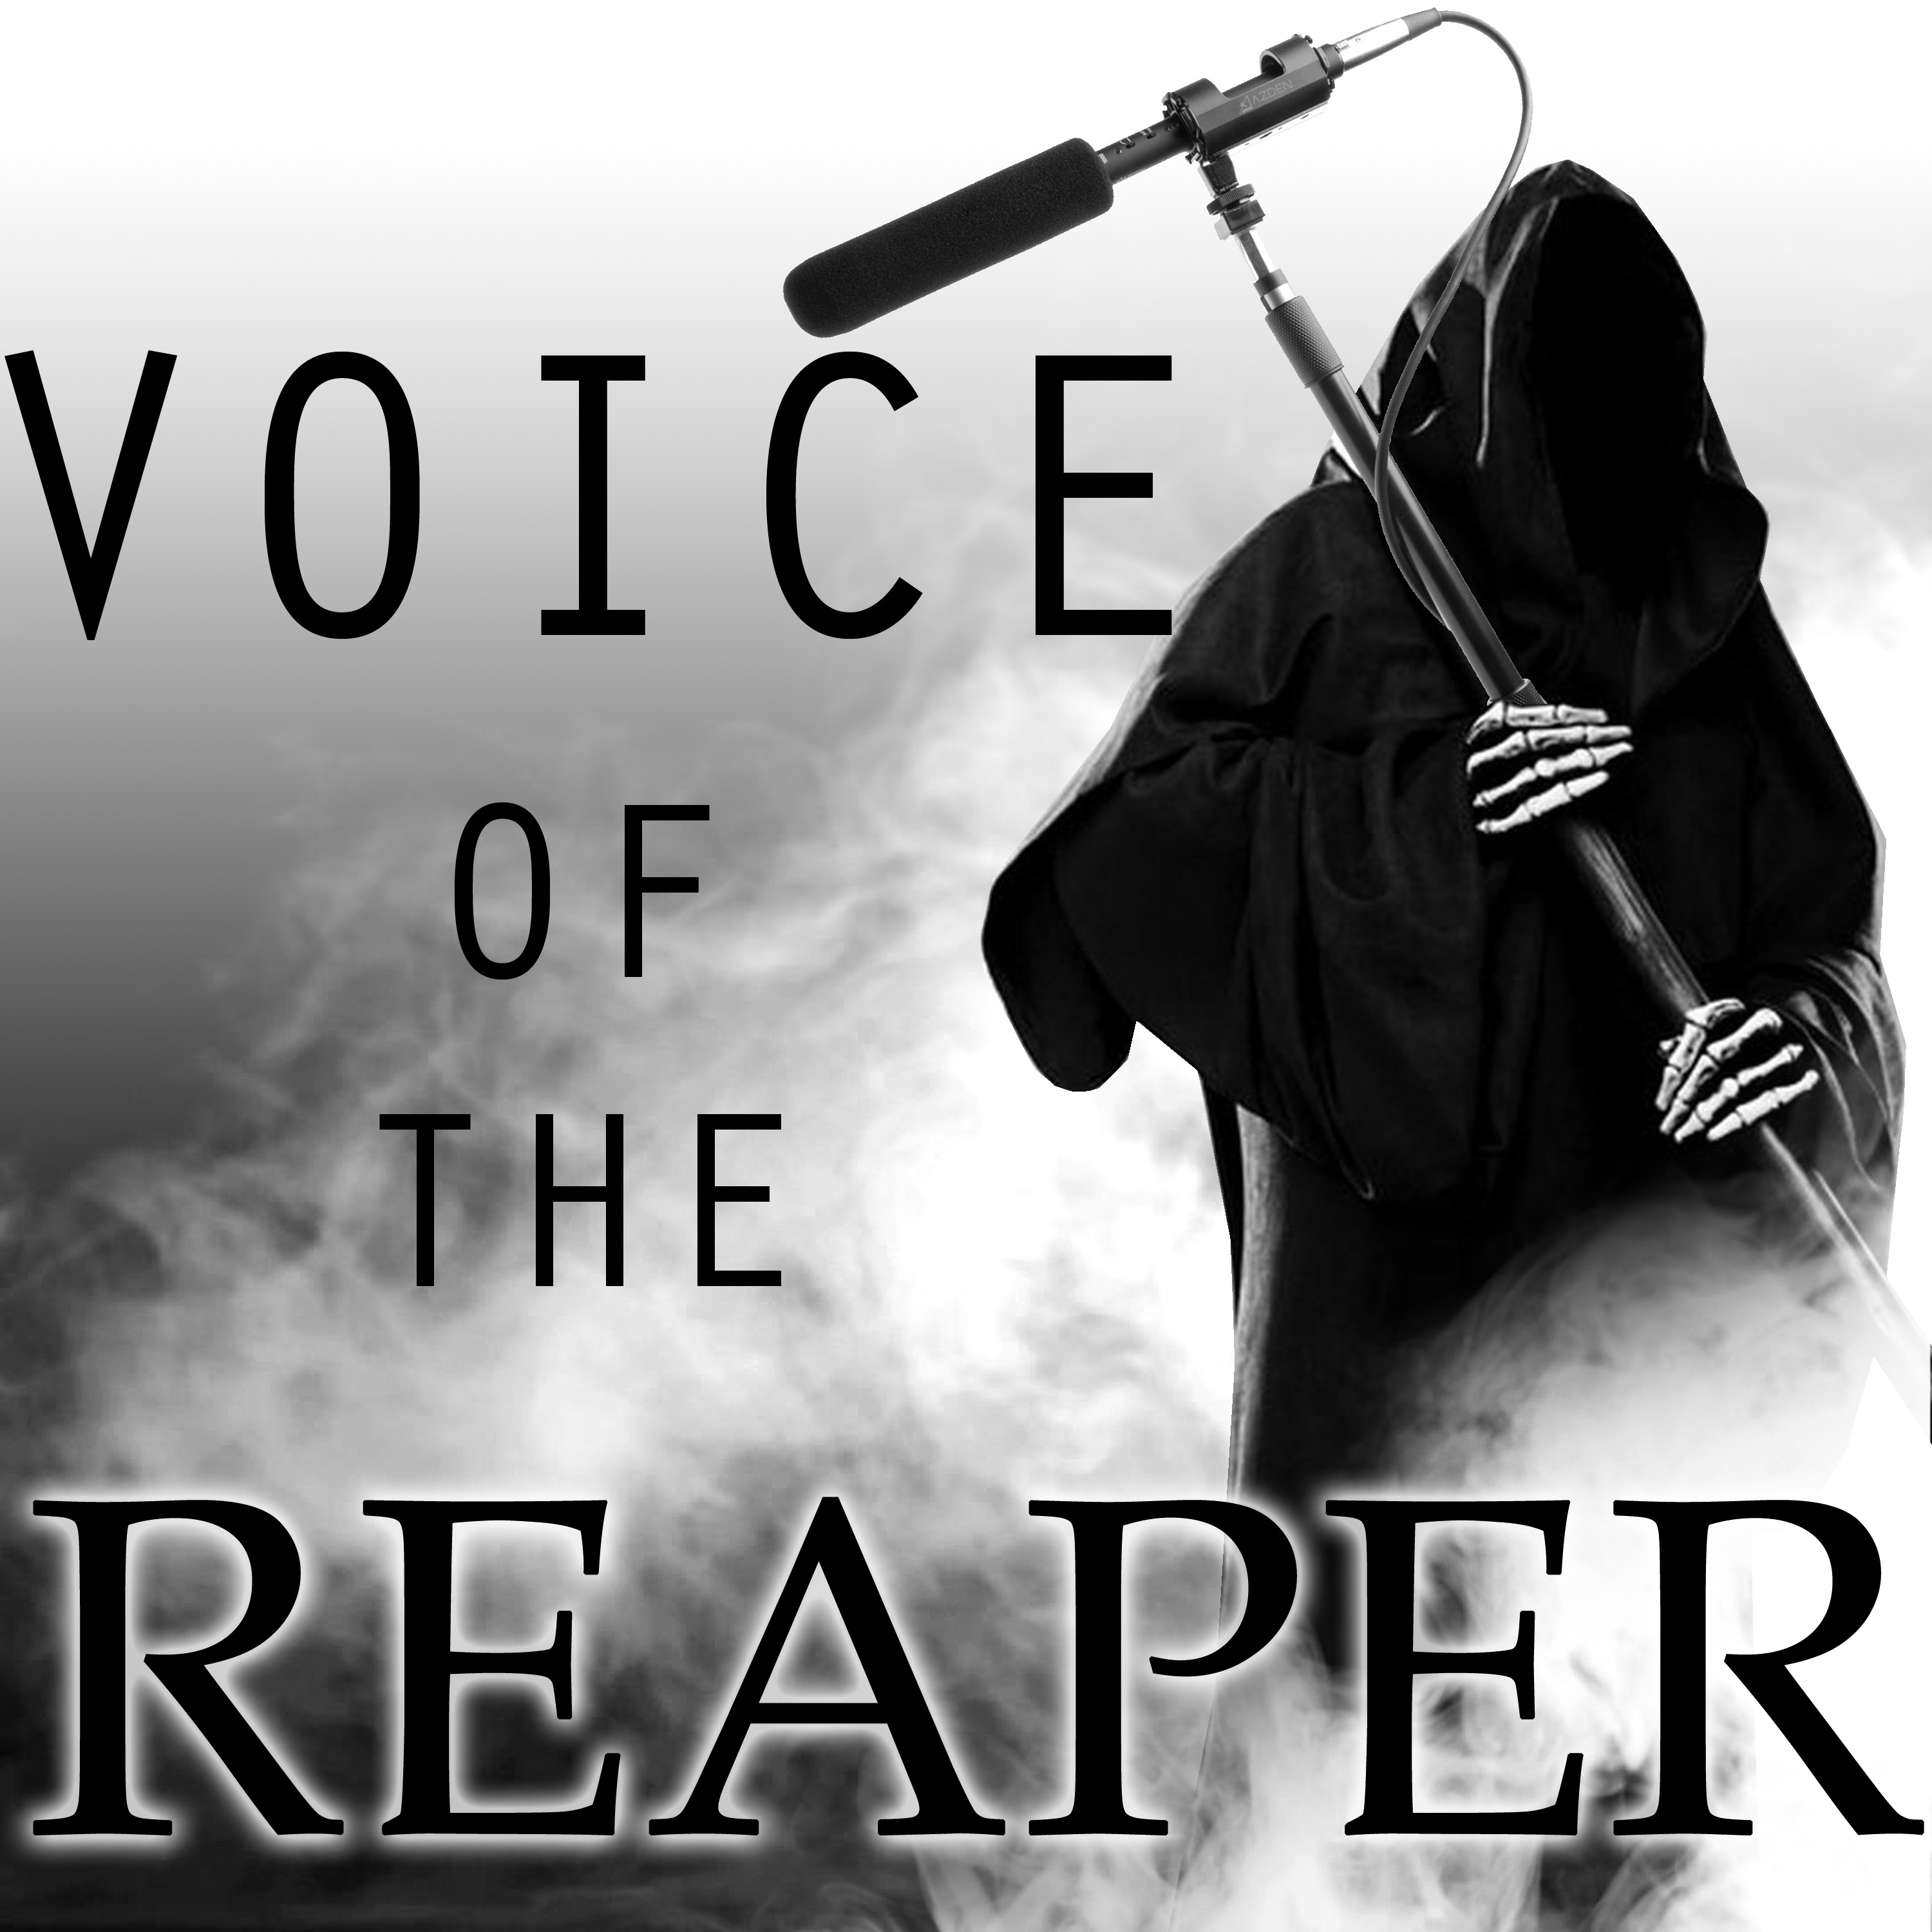 Voice of The Reaper